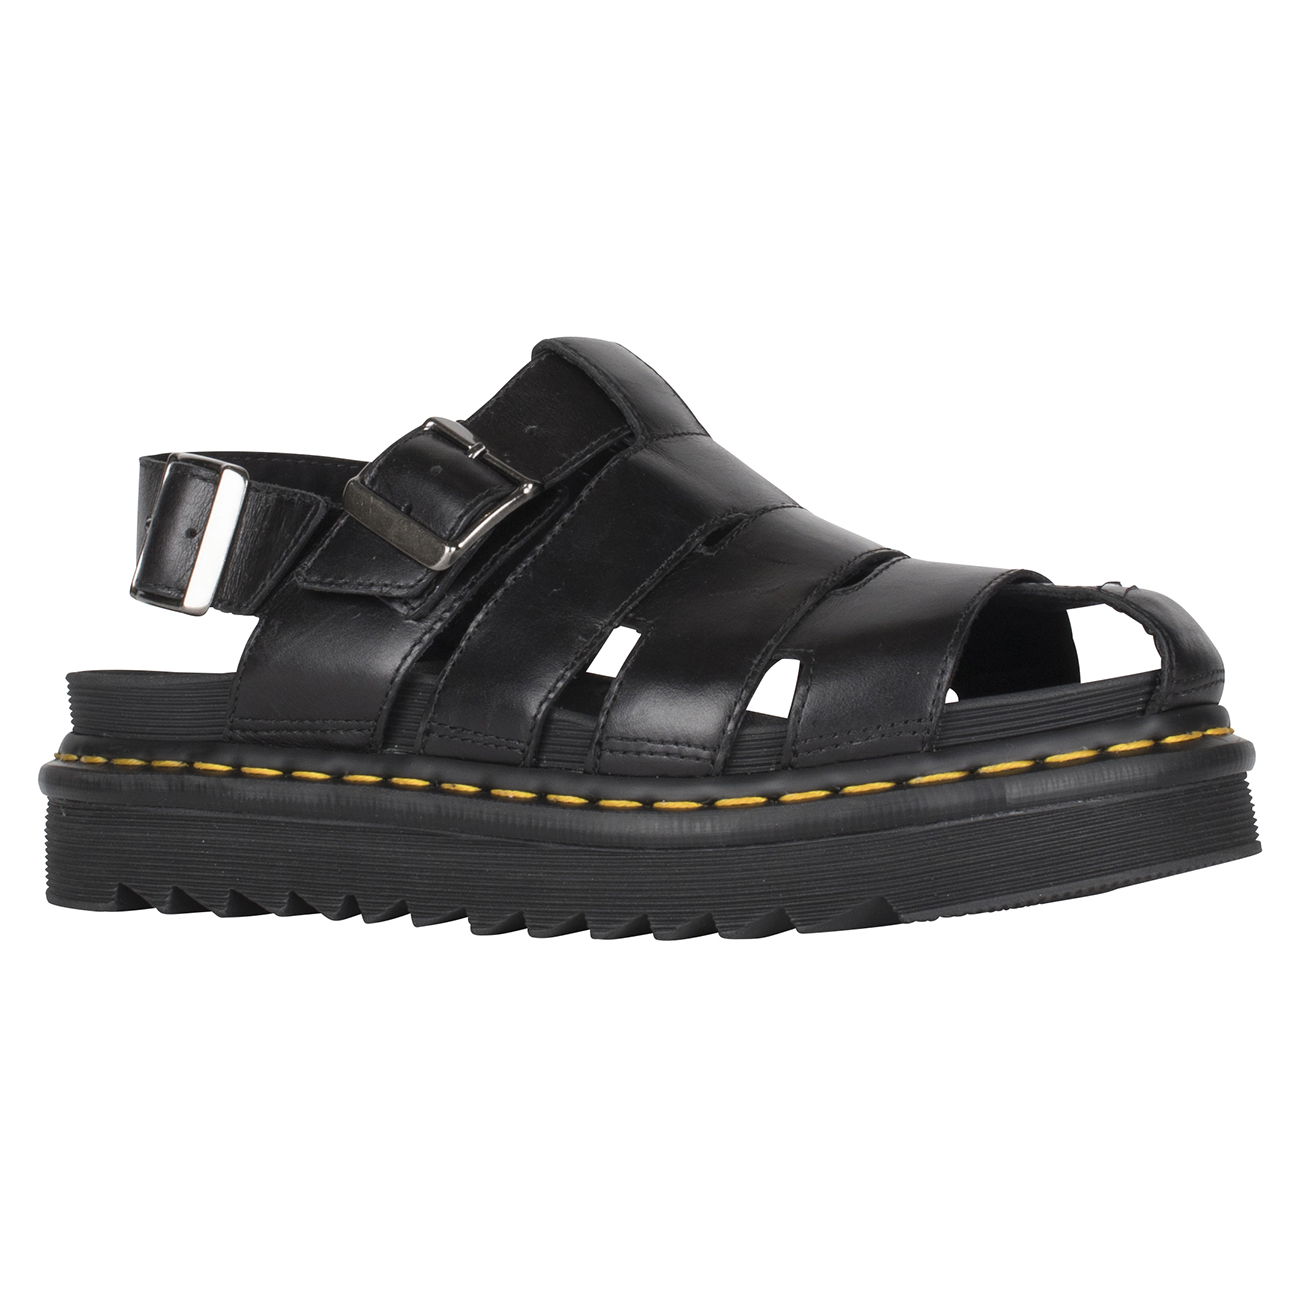 Unisex Adults Dr Martens Able